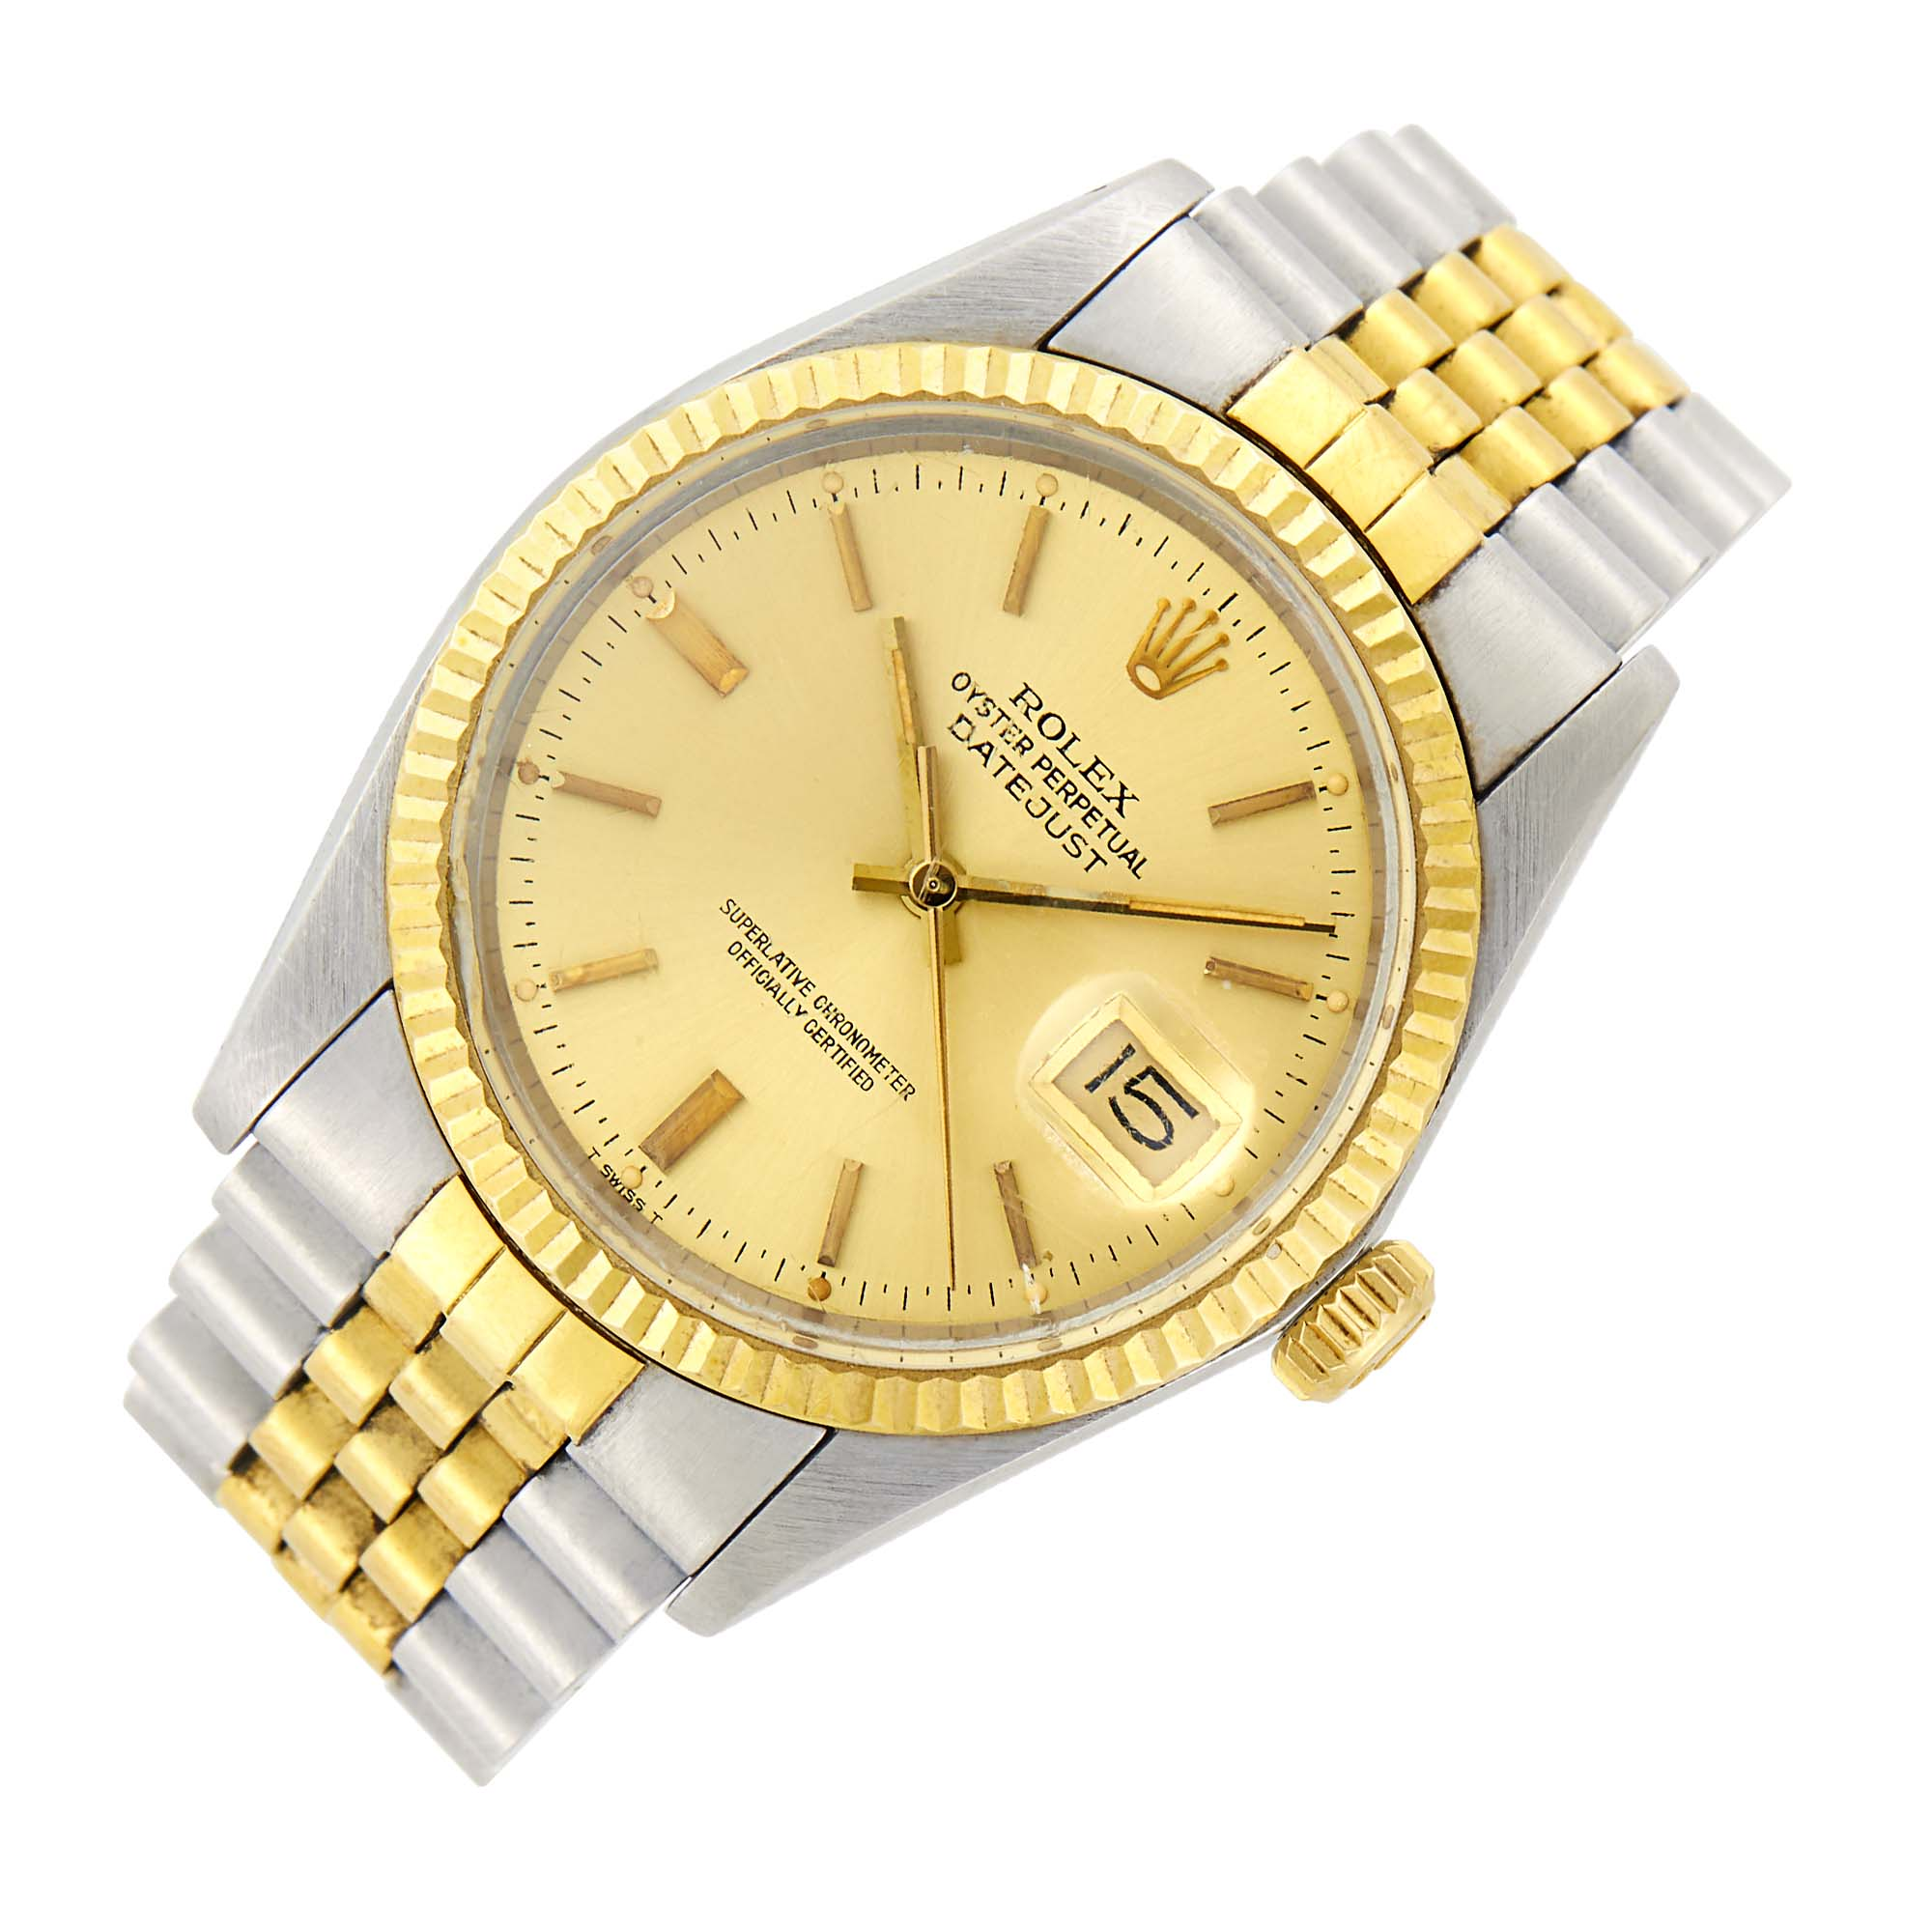 Lot image - Rolex Gentlemans Stainless Steel and Gold Oyster Perpetual Datejust Wristwatch, Ref. 16013